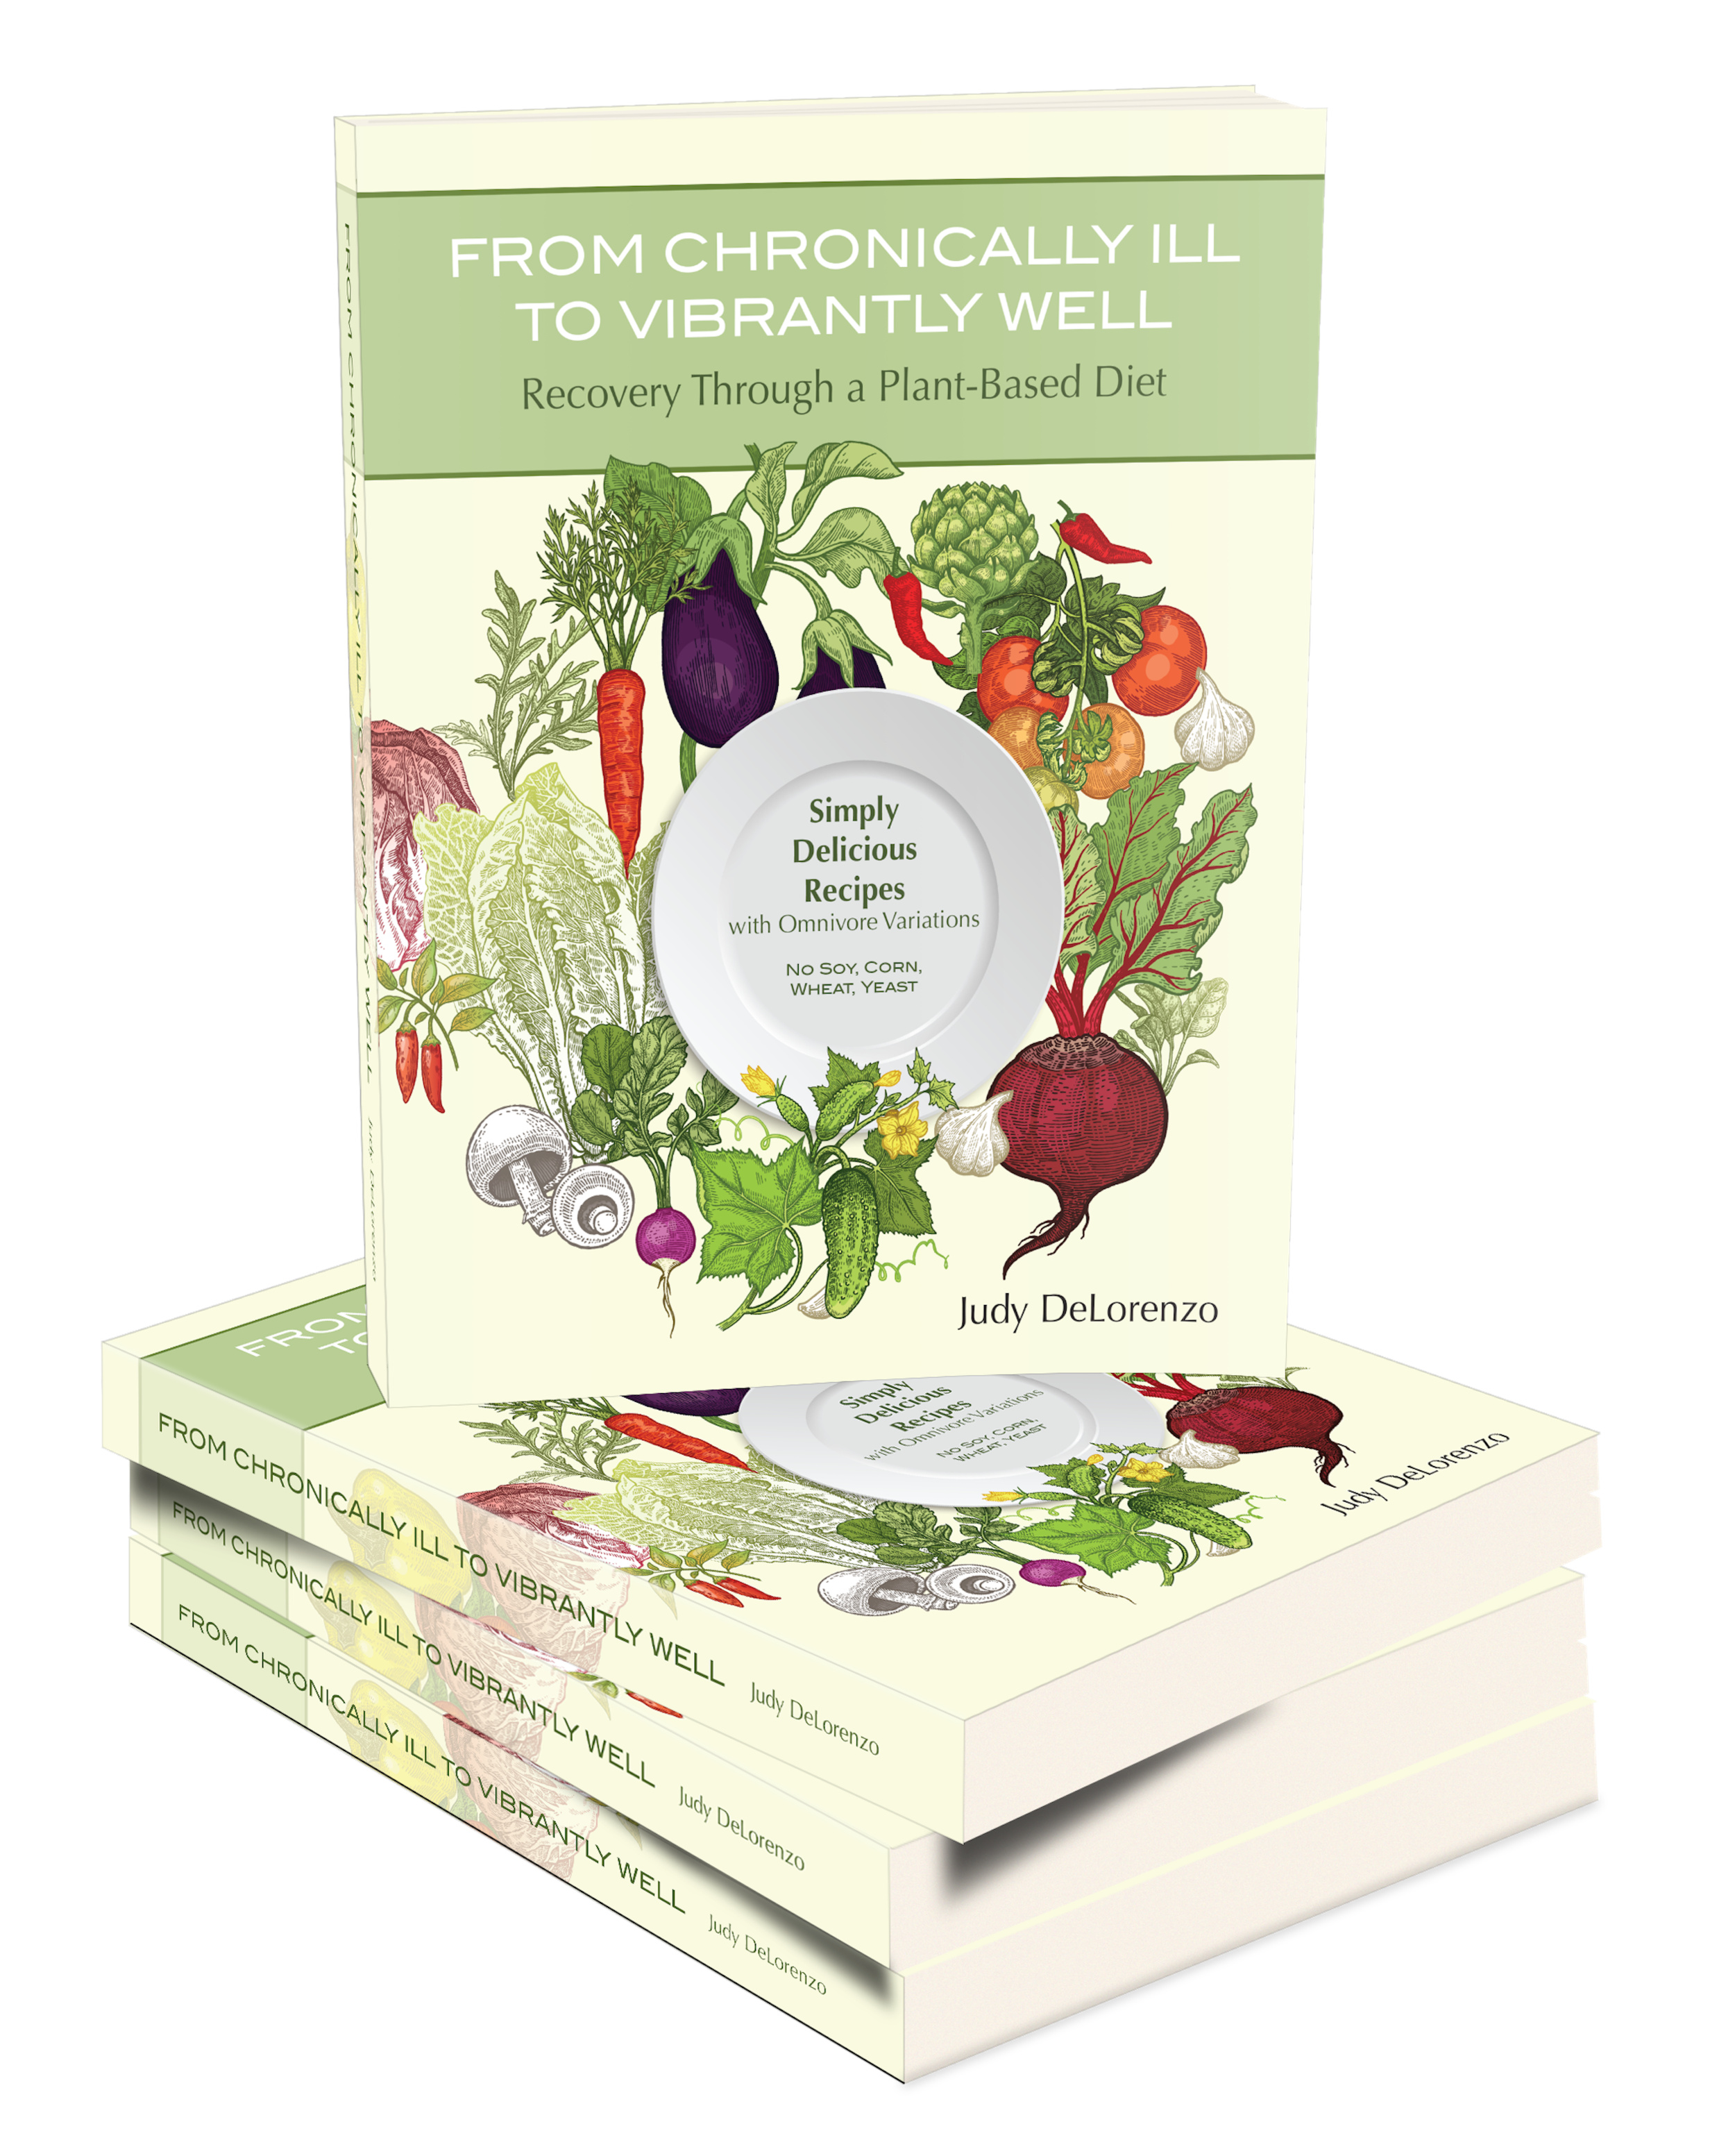 - Dear Friends,If you do buy this cookbook and healthy eating guide, please post a review on Amazon after you've become familiar with it.Thank you and Cheers to Vibrant Health!